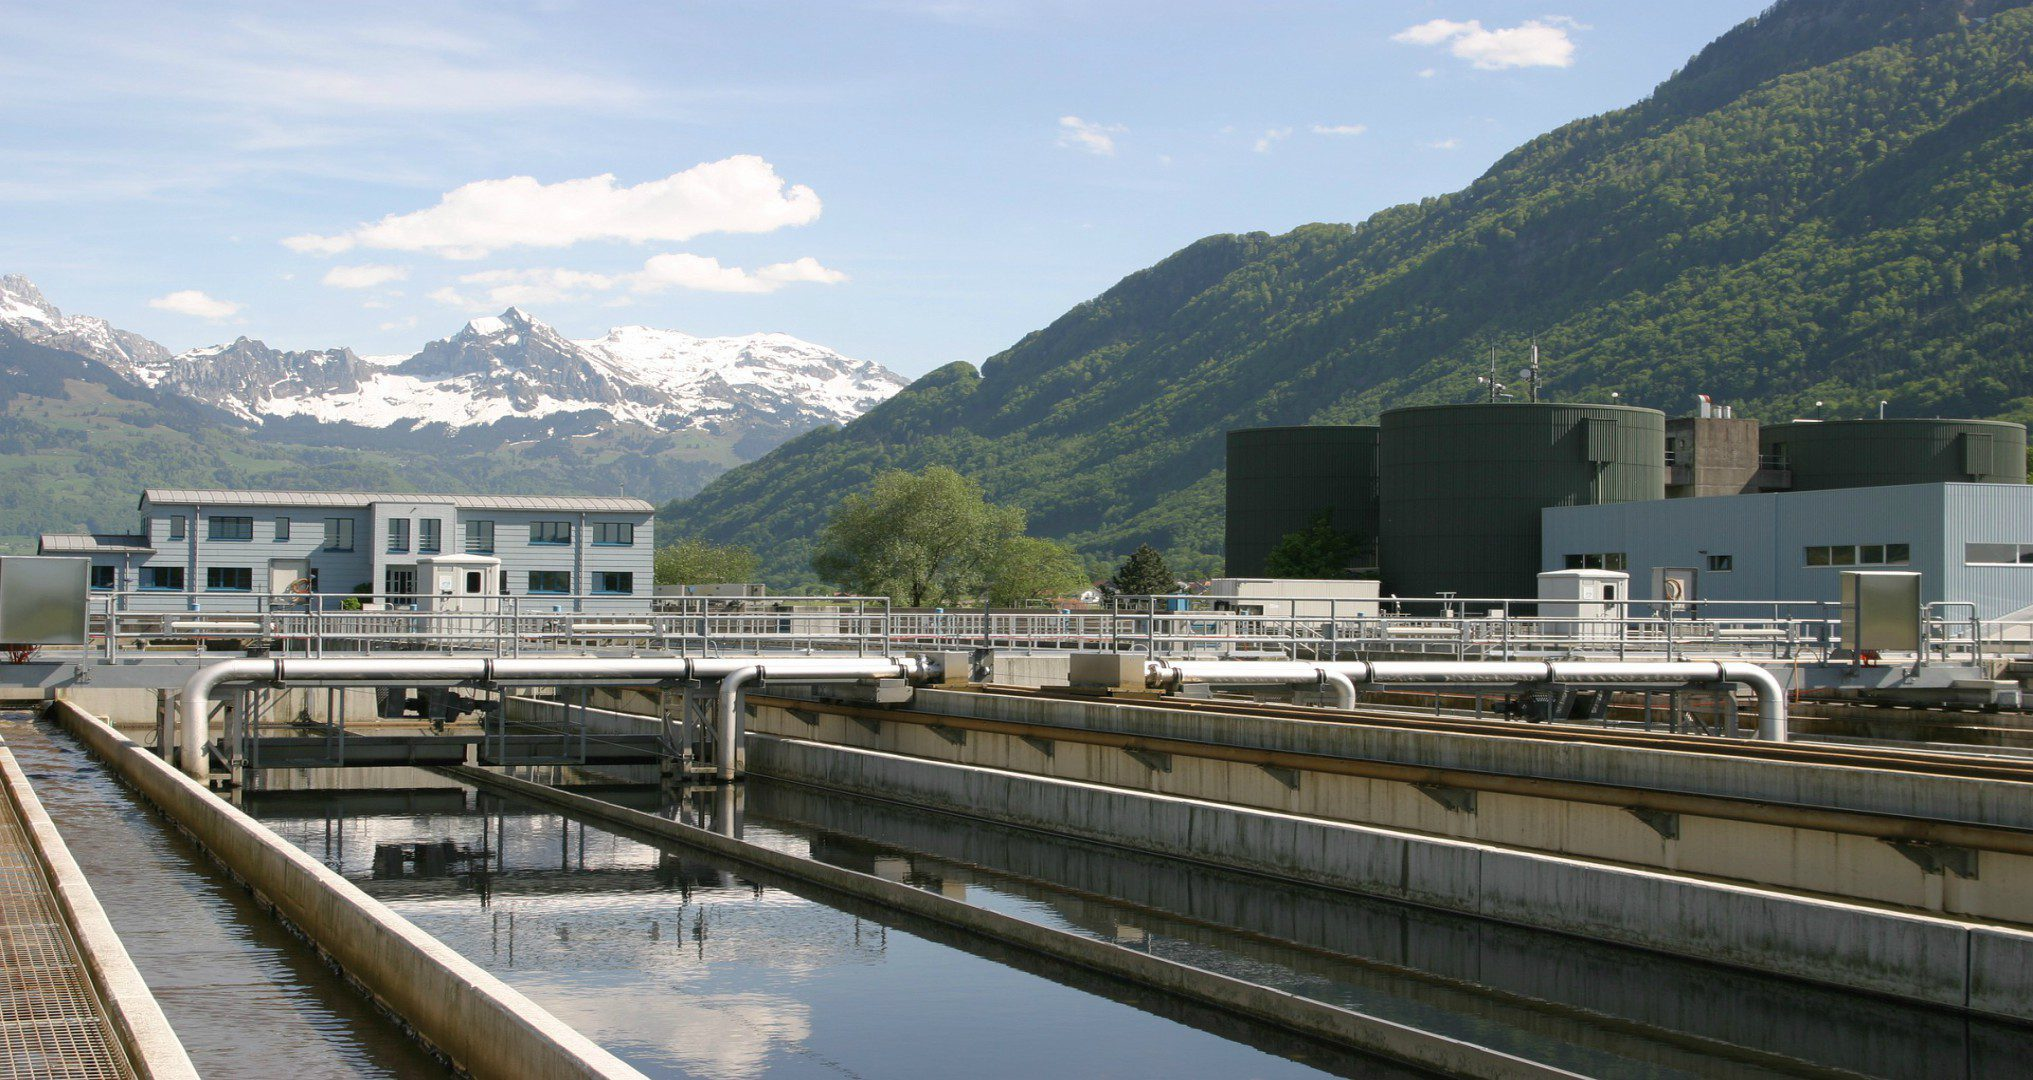 water treatment plant surrounded by mountains